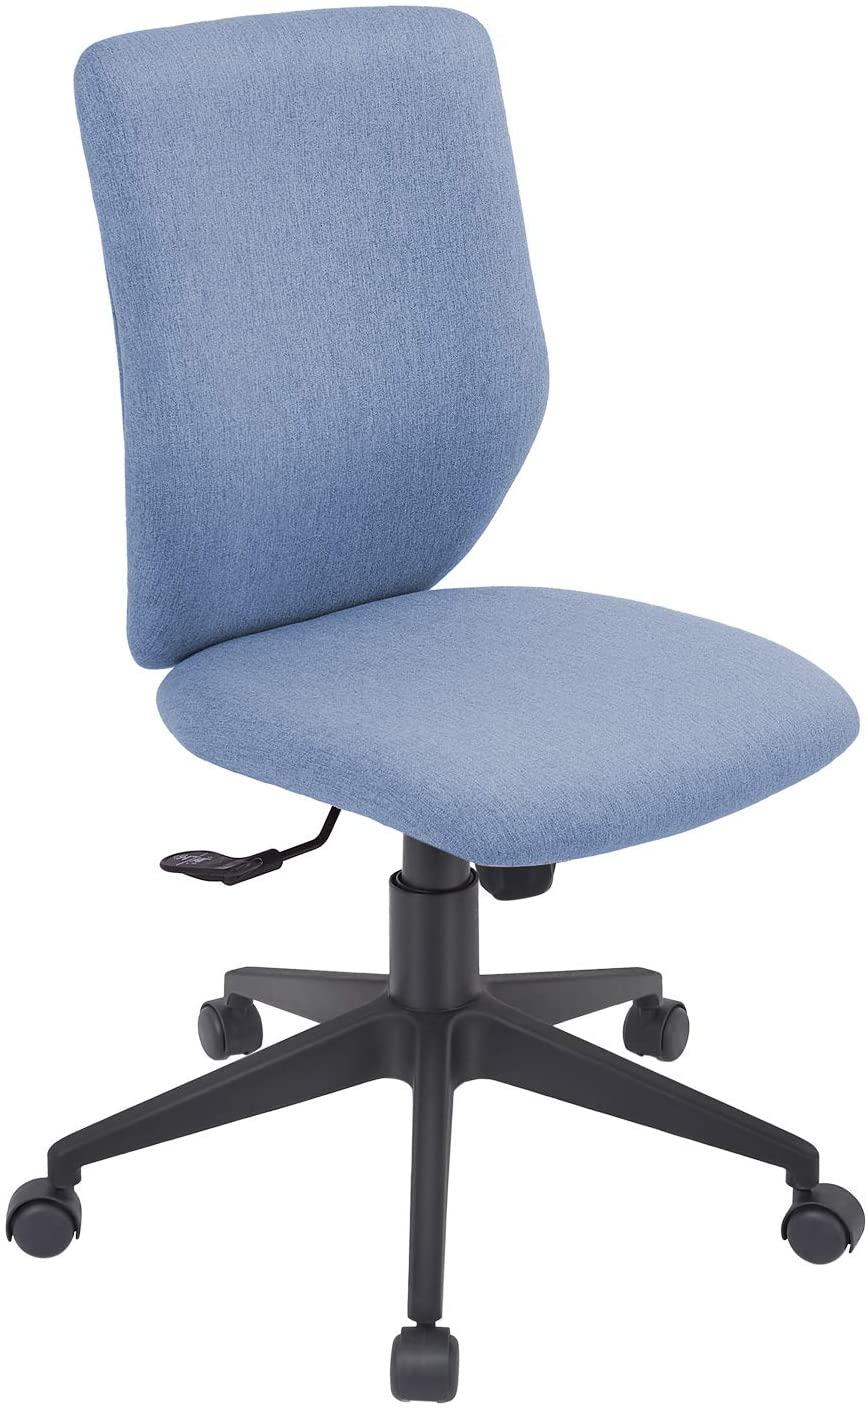 Bowthy Armless Office Chair Ergonomic Computer Task Desk Chair Without Arms Mid Back Fabric Swivel Chair (Blue)